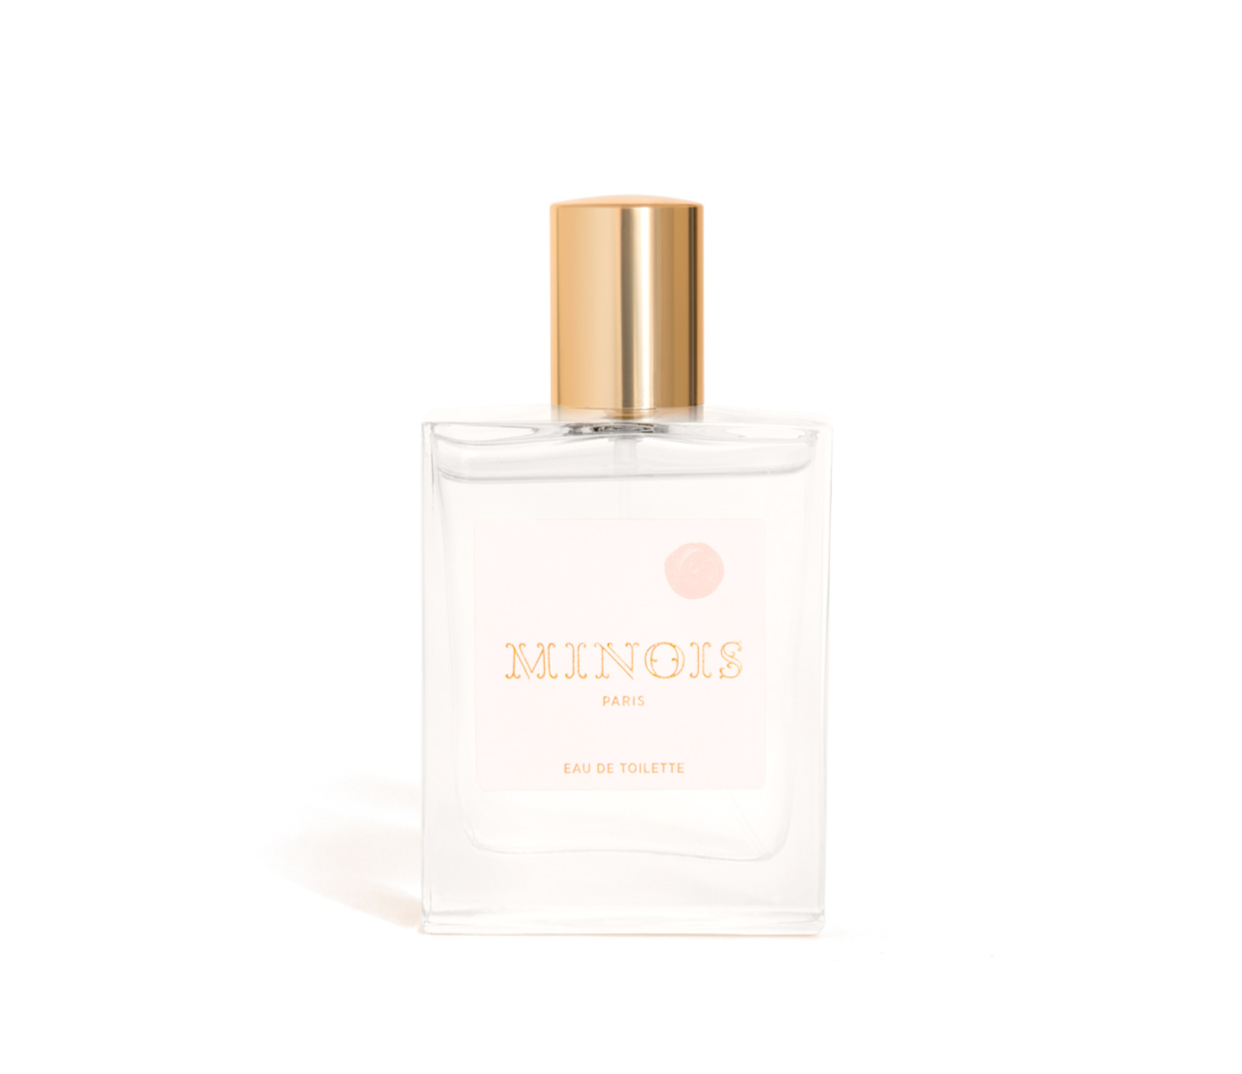 Minois-Paris-eau-de-toilette